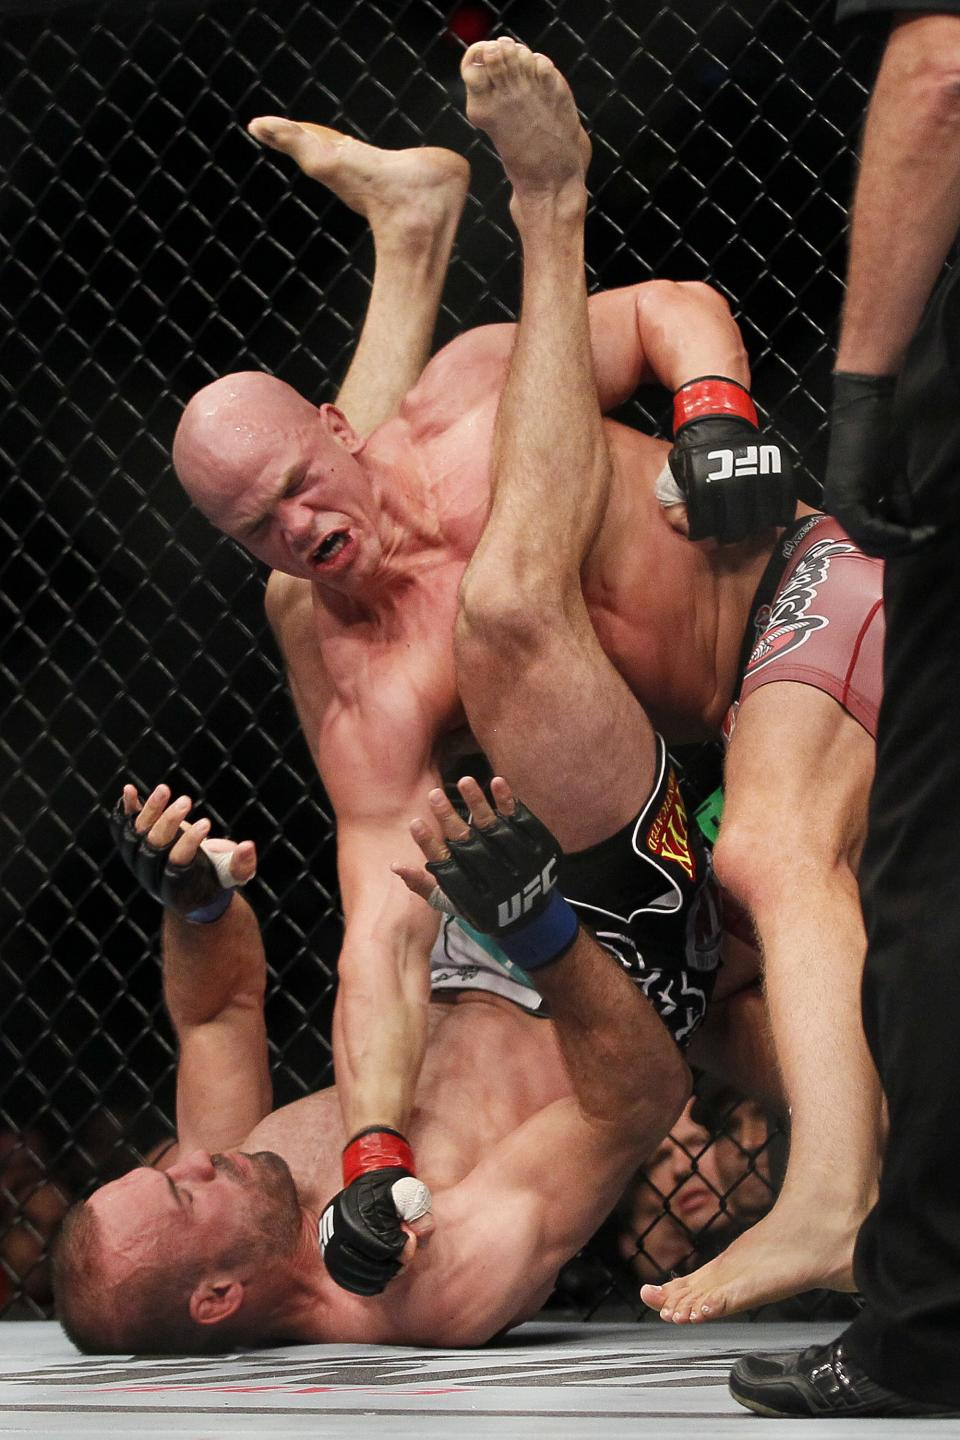 Ryan Jimmo, right, lays into Igor Pokrajac during during their light heavyweight bout at UFC 161 in Winnipeg on Saturday June 15, 2013. (AP Photo/The Canadian Press, John Woods)